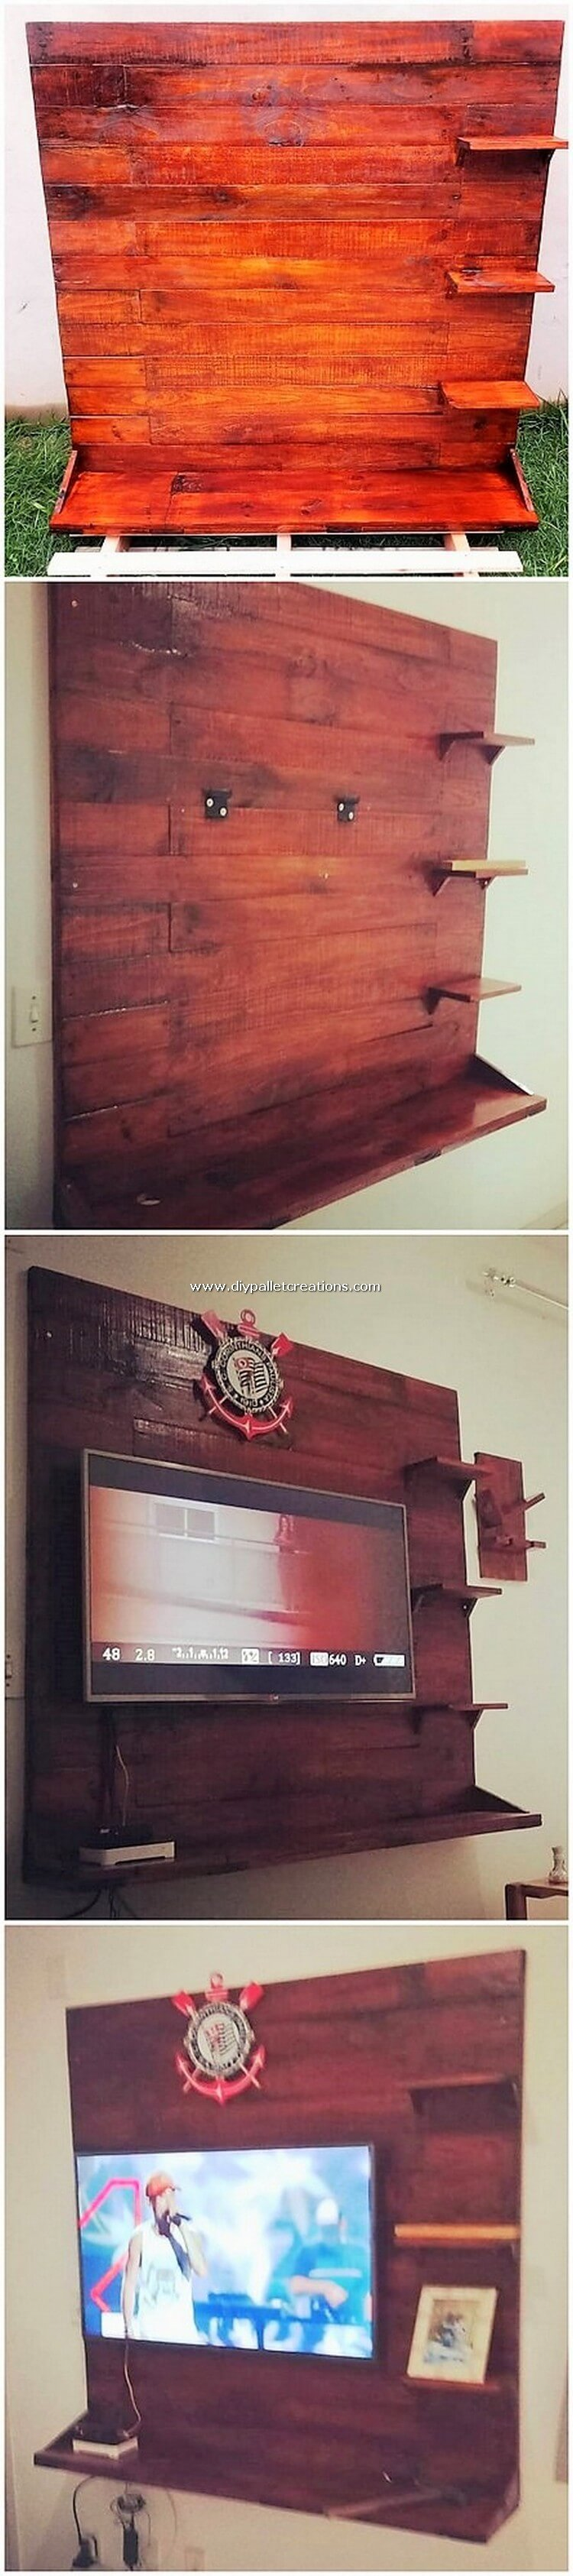 Surprising Diy Ideas With Old Wood Pallets Diy Pallet Projects